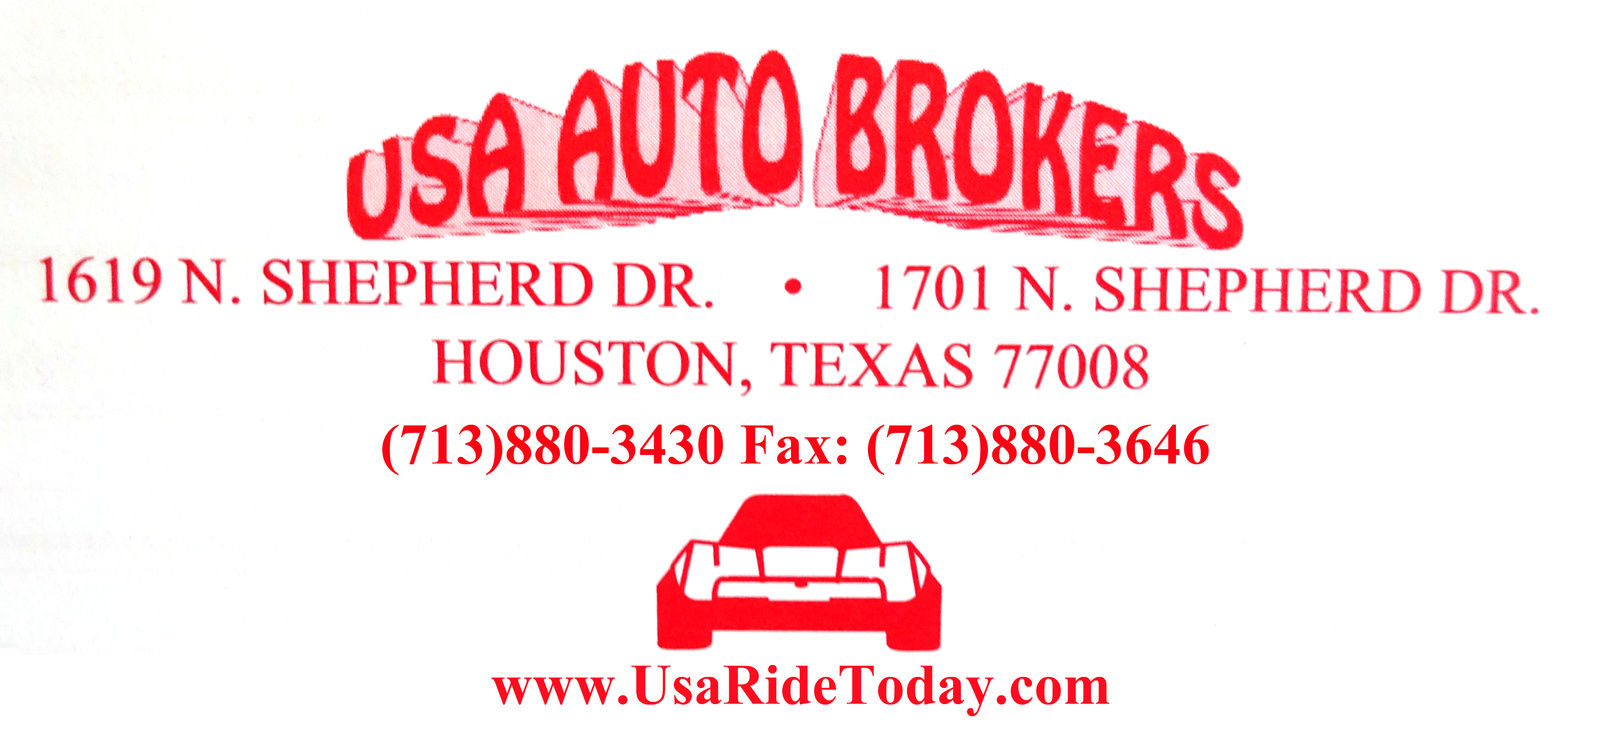 Houston Nissan Dealers >> USA Auto Brokers - Houston, TX: Read Consumer reviews, Browse Used and New Cars for Sale